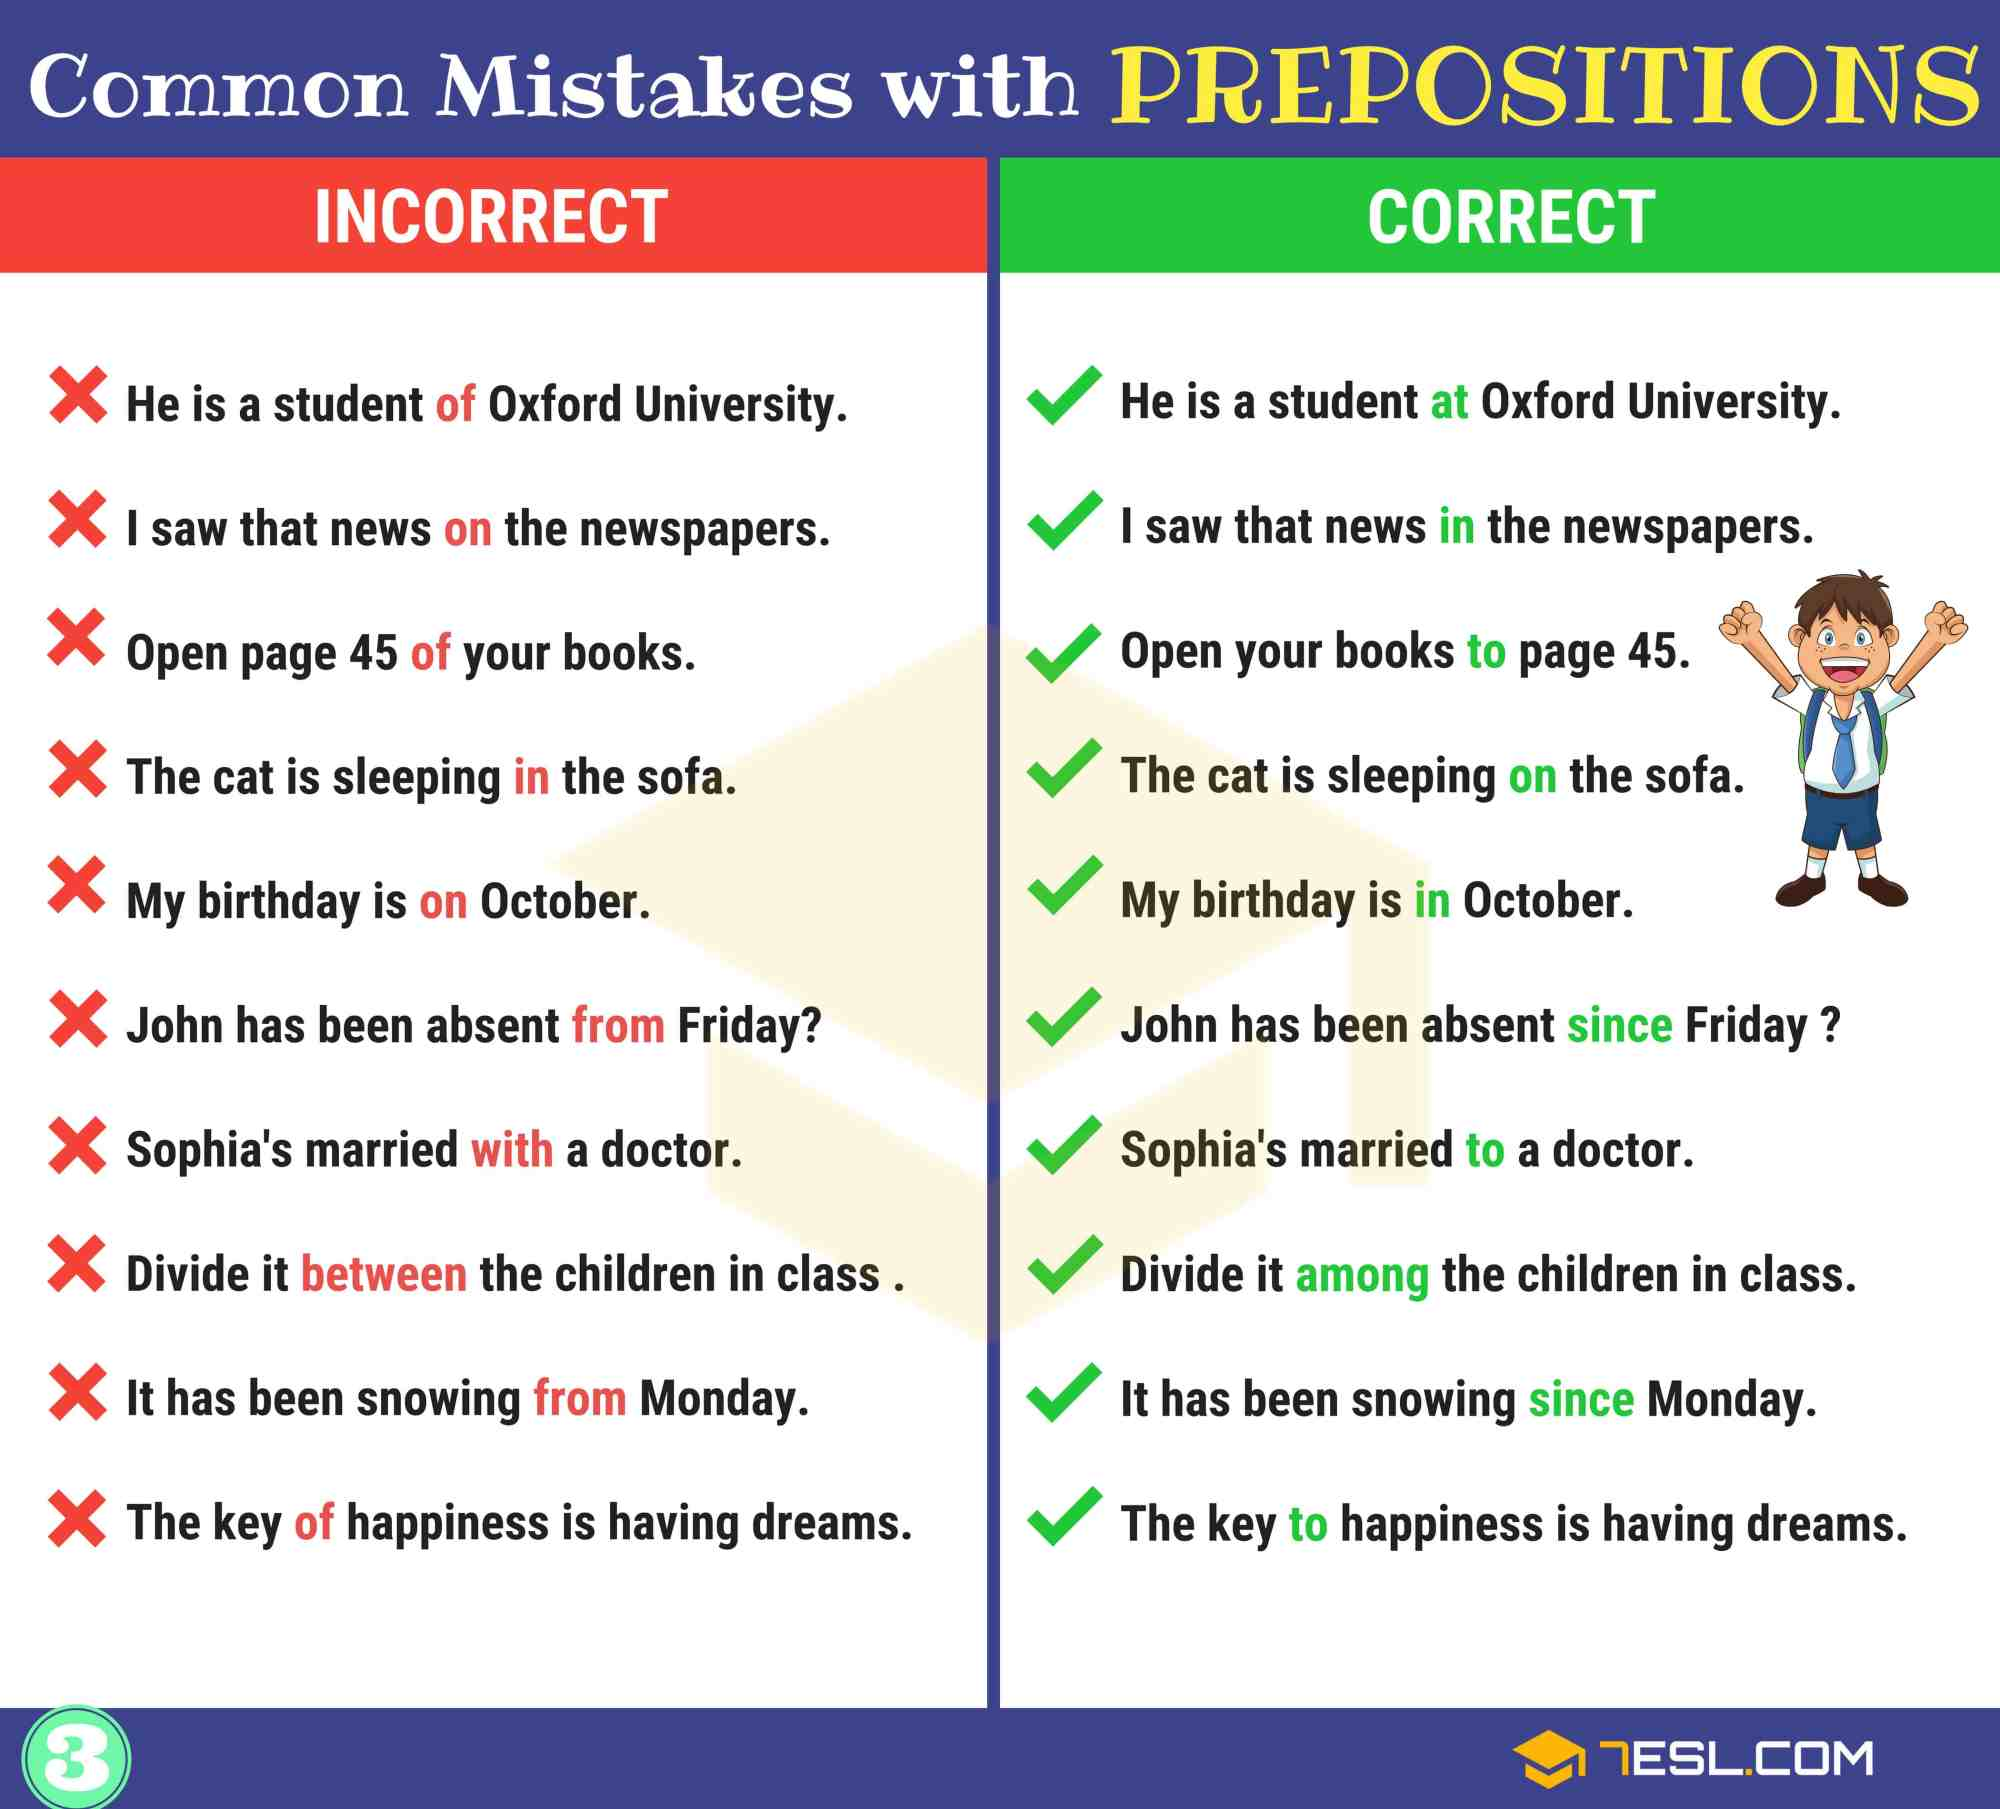 hight resolution of Preposition Errors: 130+ Common MISTAKES With PREPOSITIONS • 7ESL